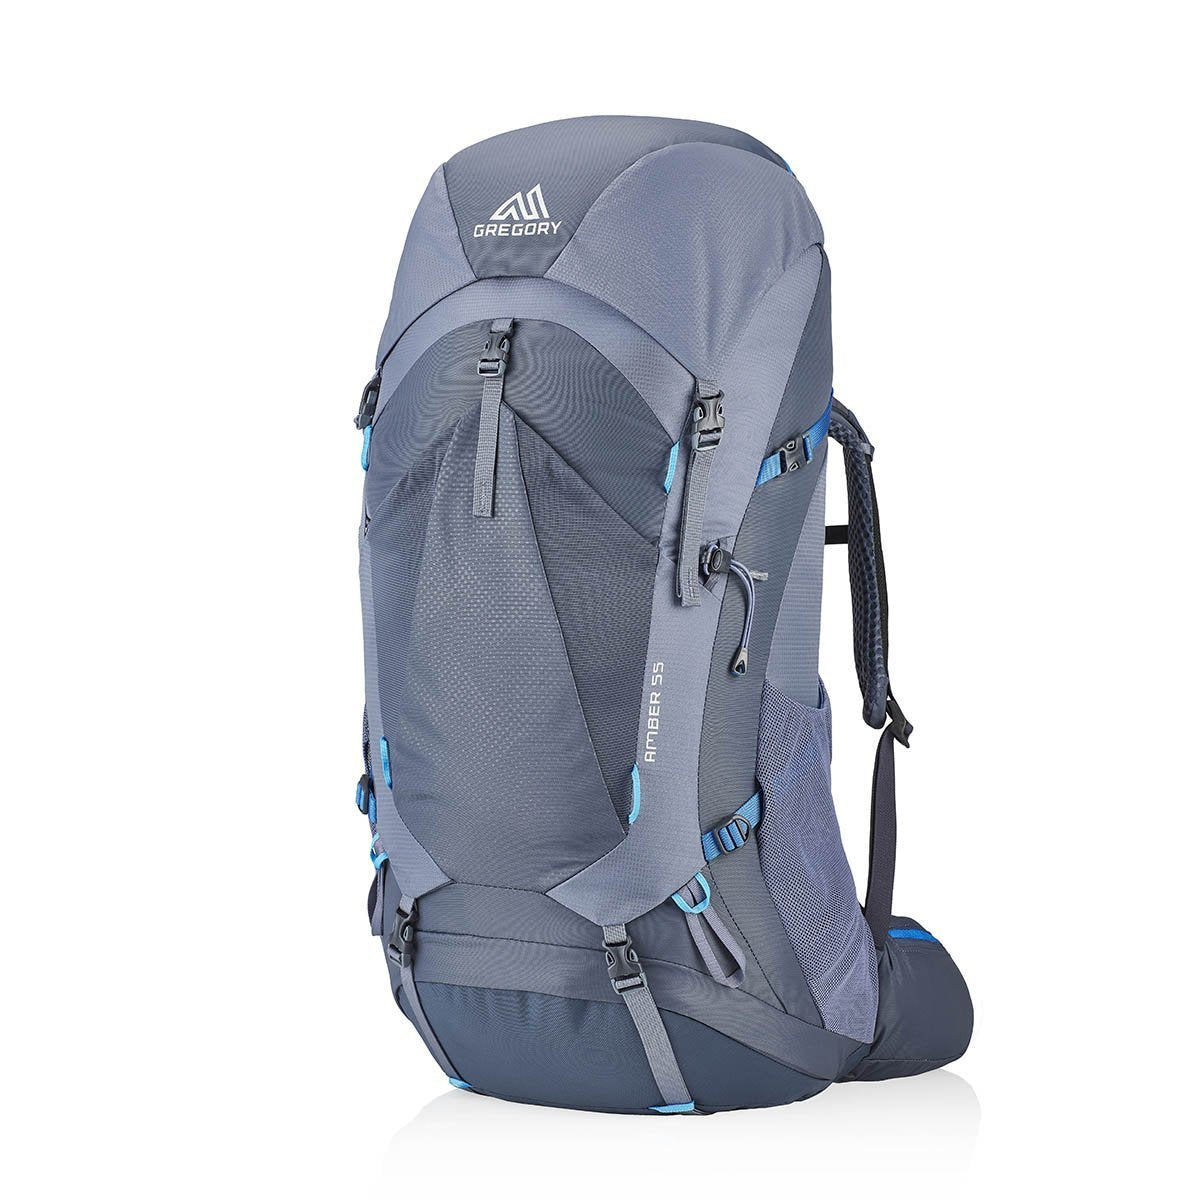 G126877-8319, Gregory, Amber Backpack 55, Arctic Grey, Outdoor Backpack | Hiking Backpack